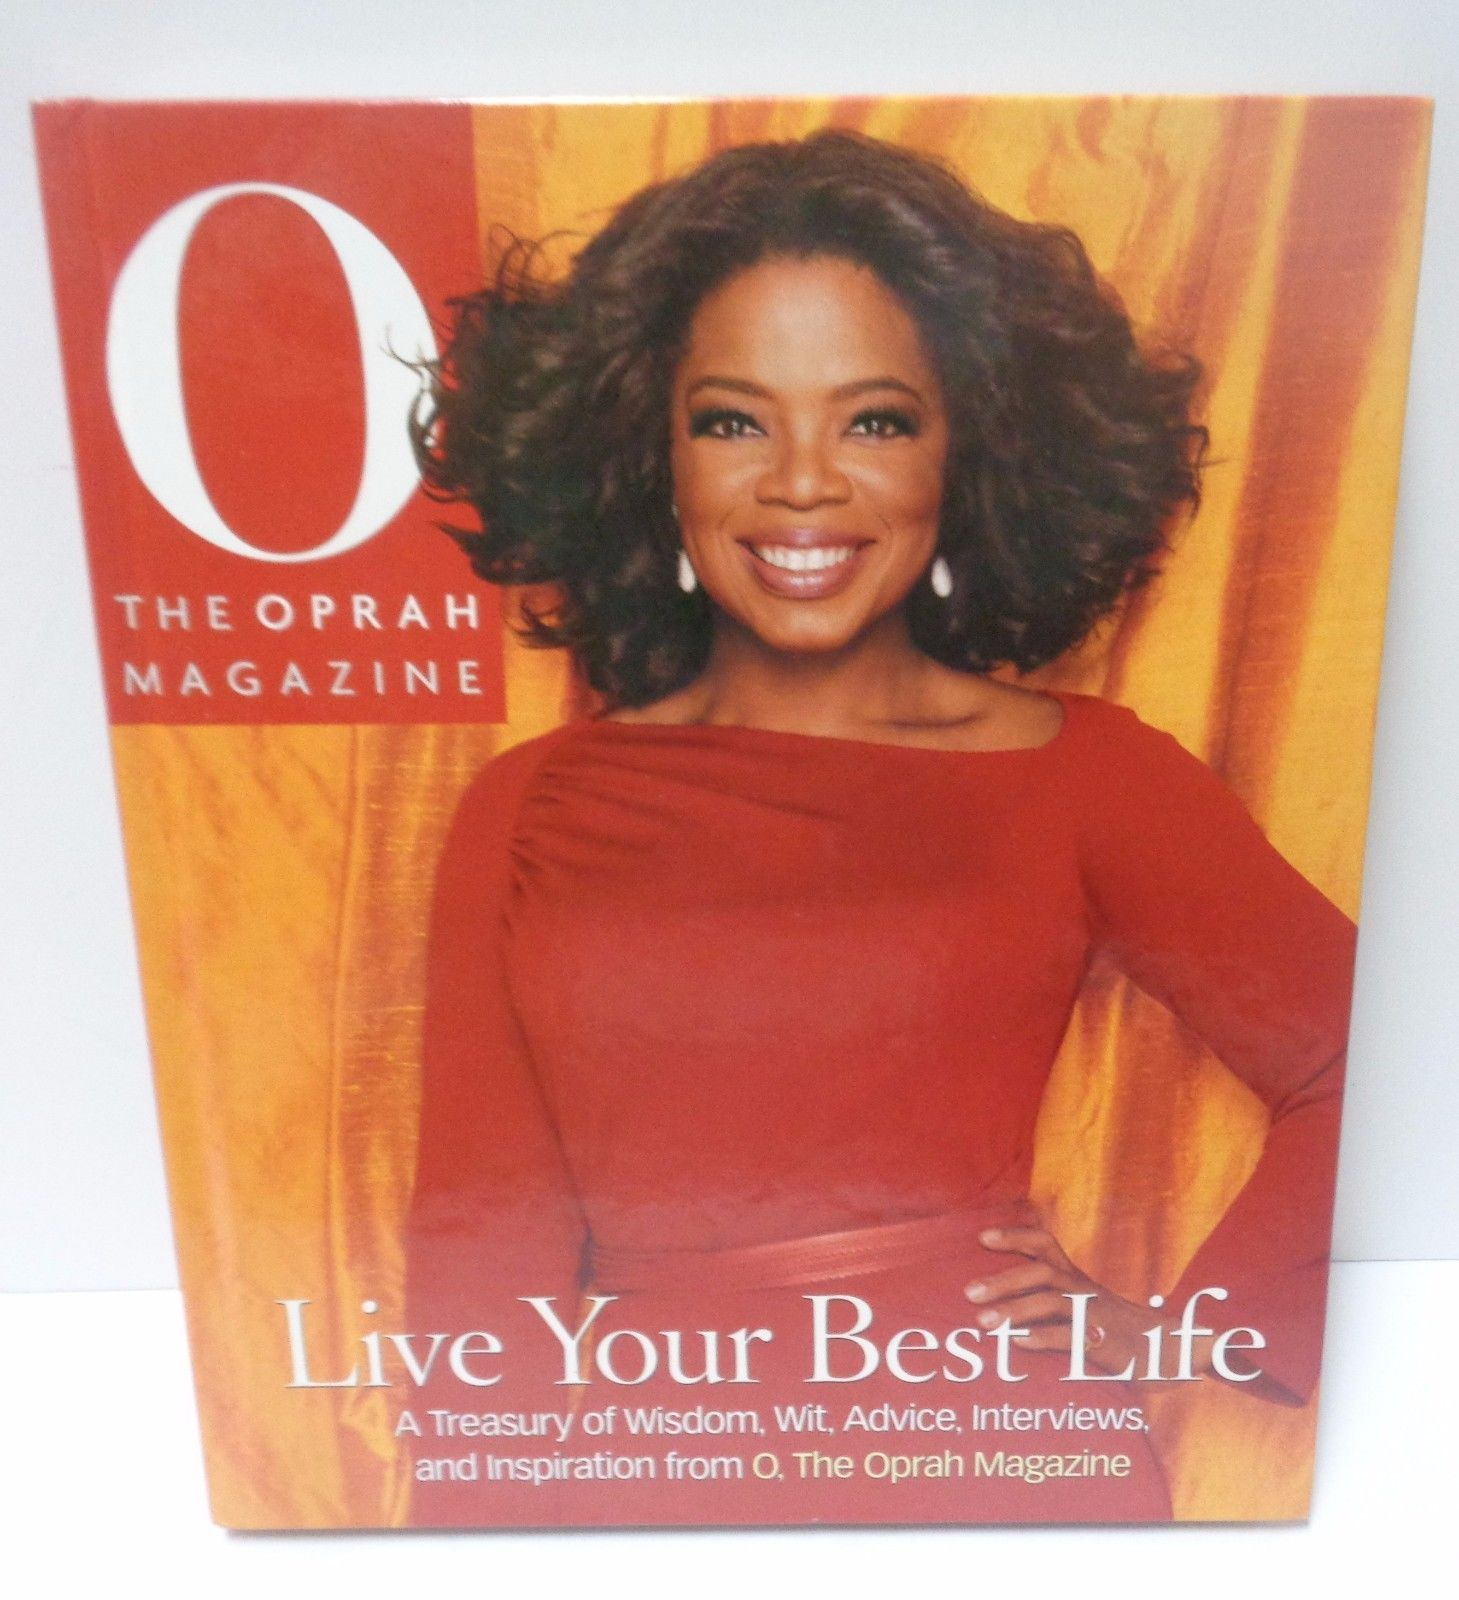 Oprah Winfrey Book LIVE YOUR BEST LIFE ISBN 0-8487-3105-0 NEW Hard Cover